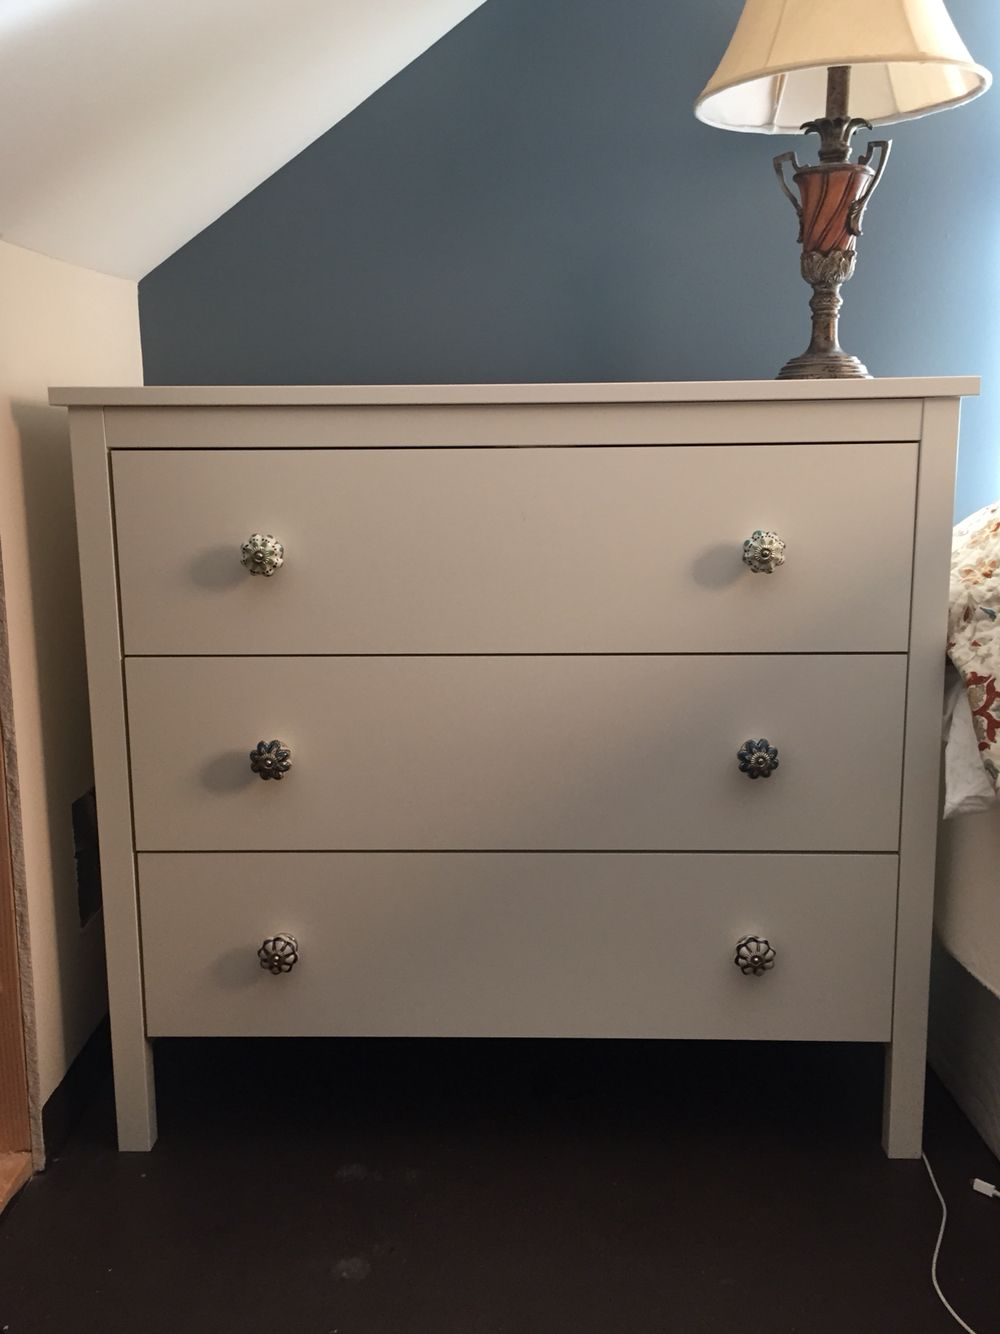 Koppang 80 Koppang Dresser Smaller Knock Off Of Hemnes From Ikea With